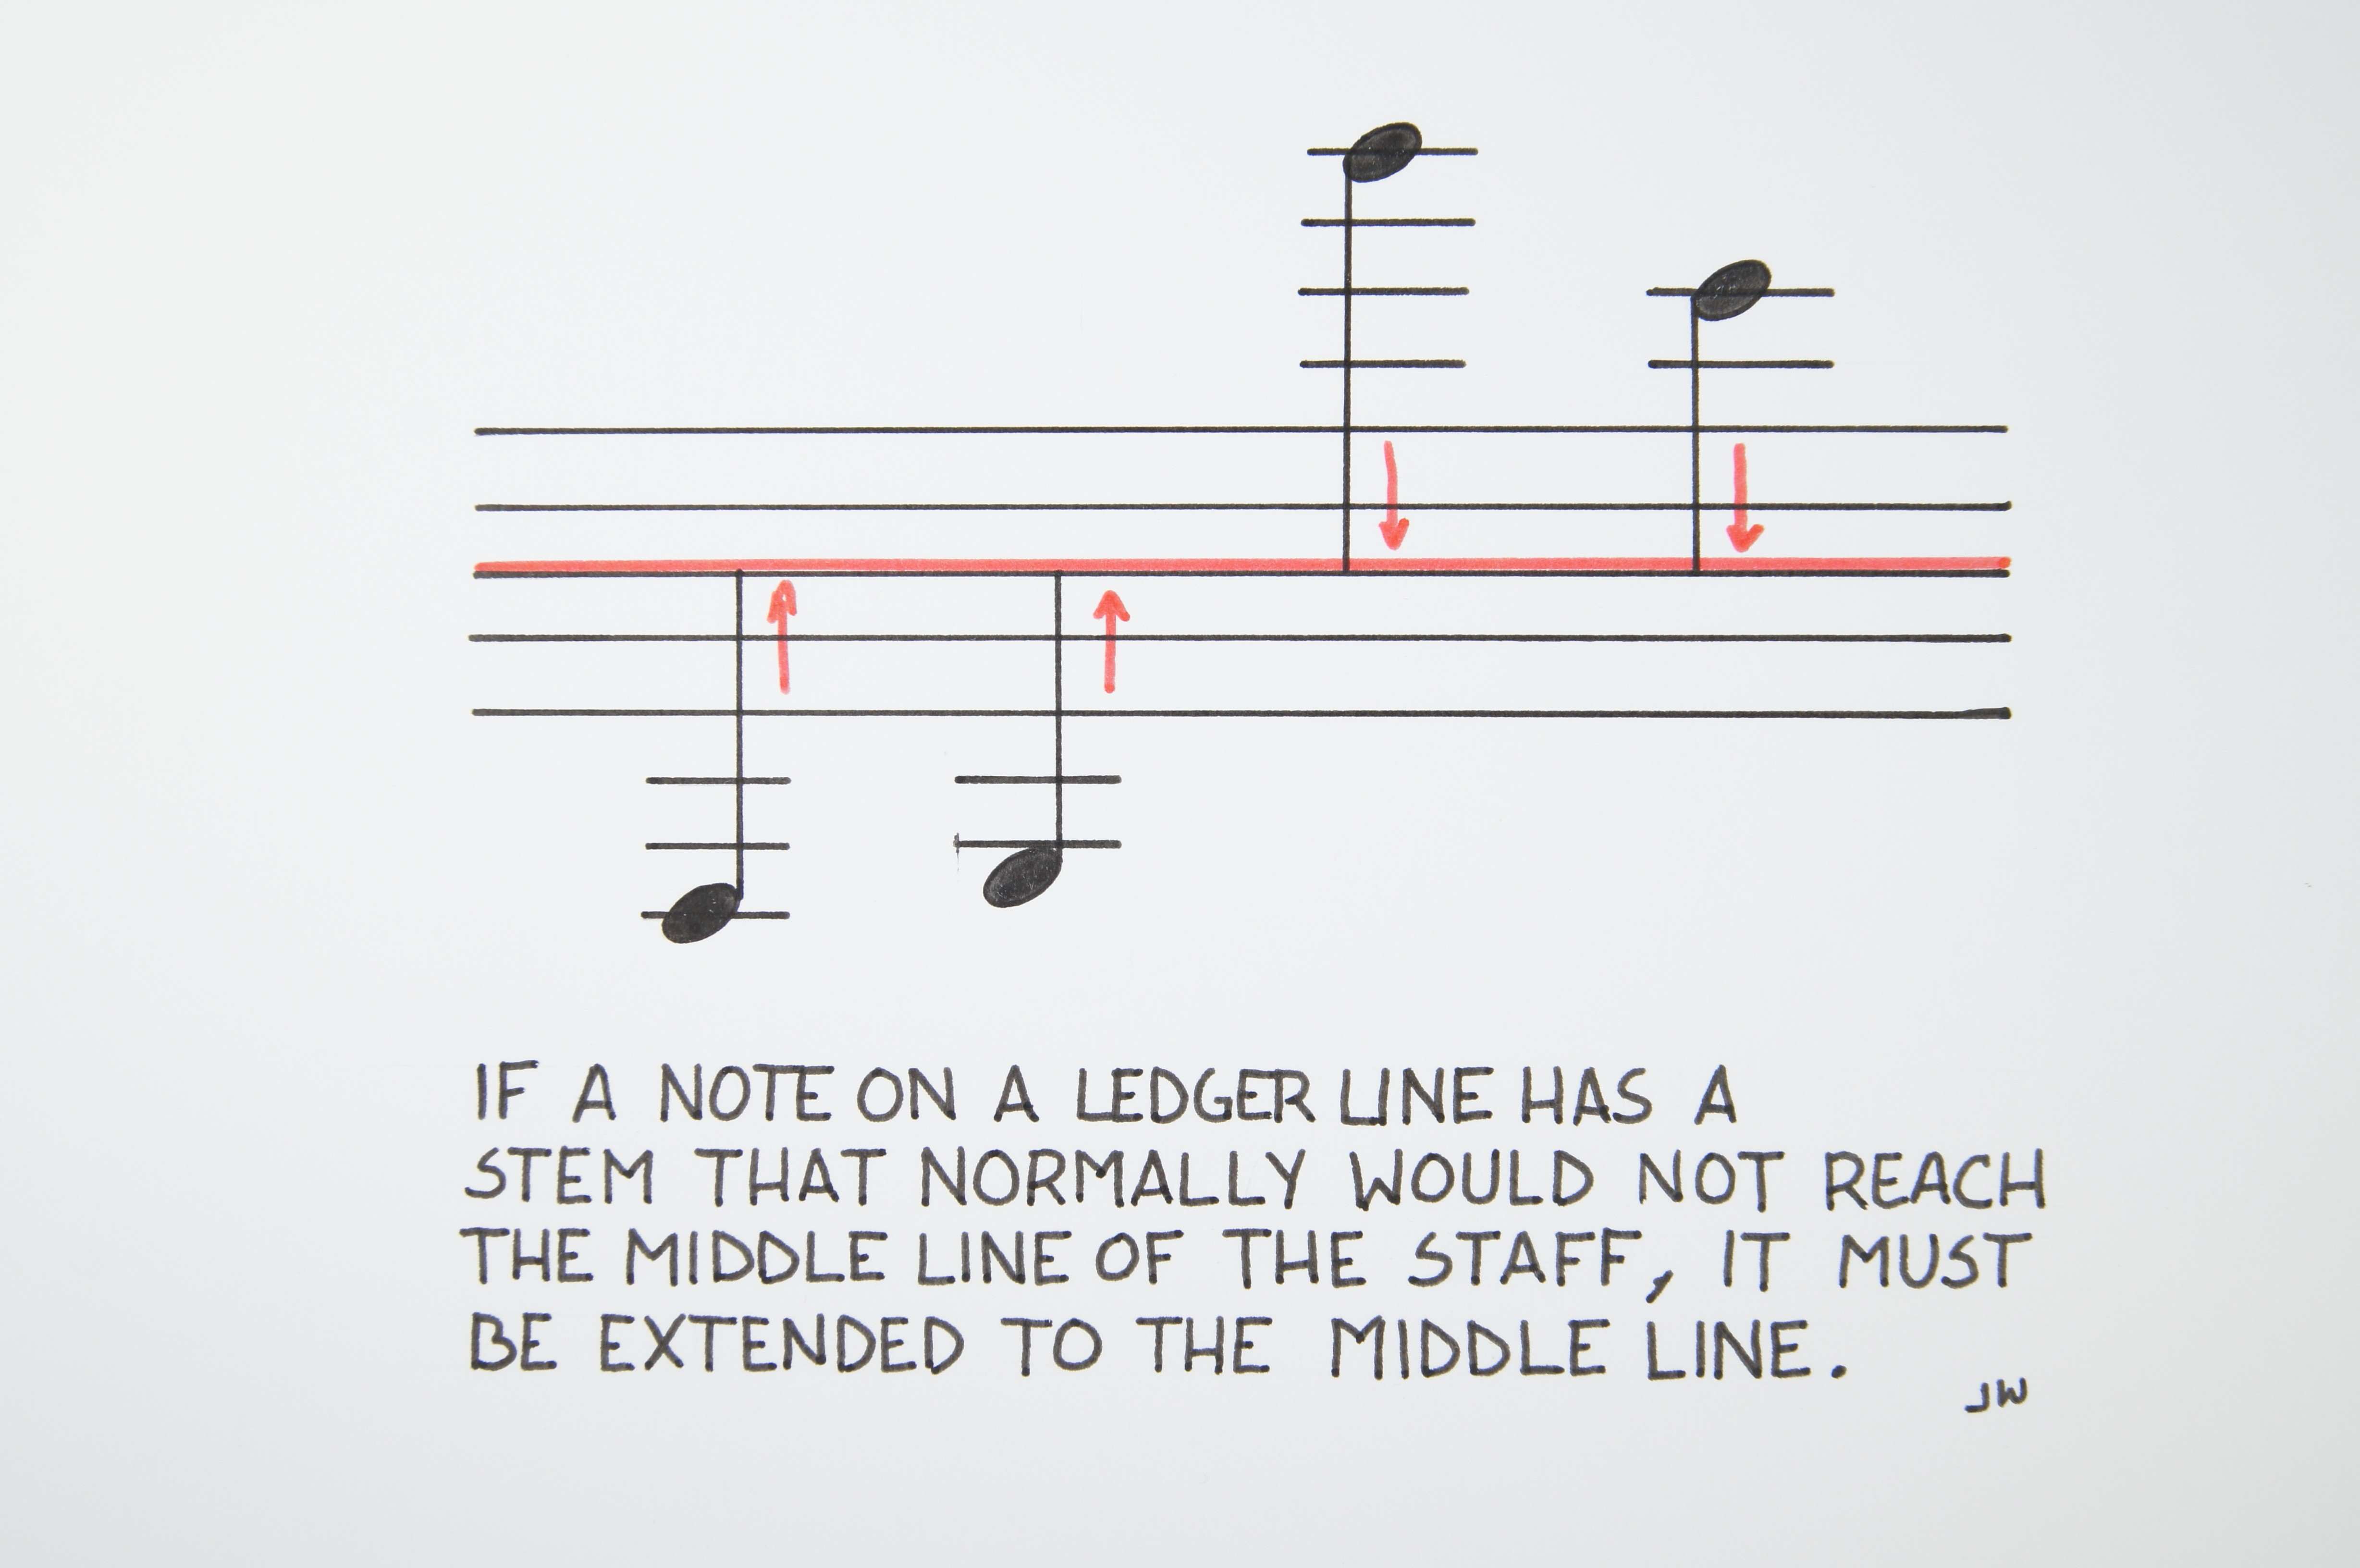 Stems on Ledger Lines